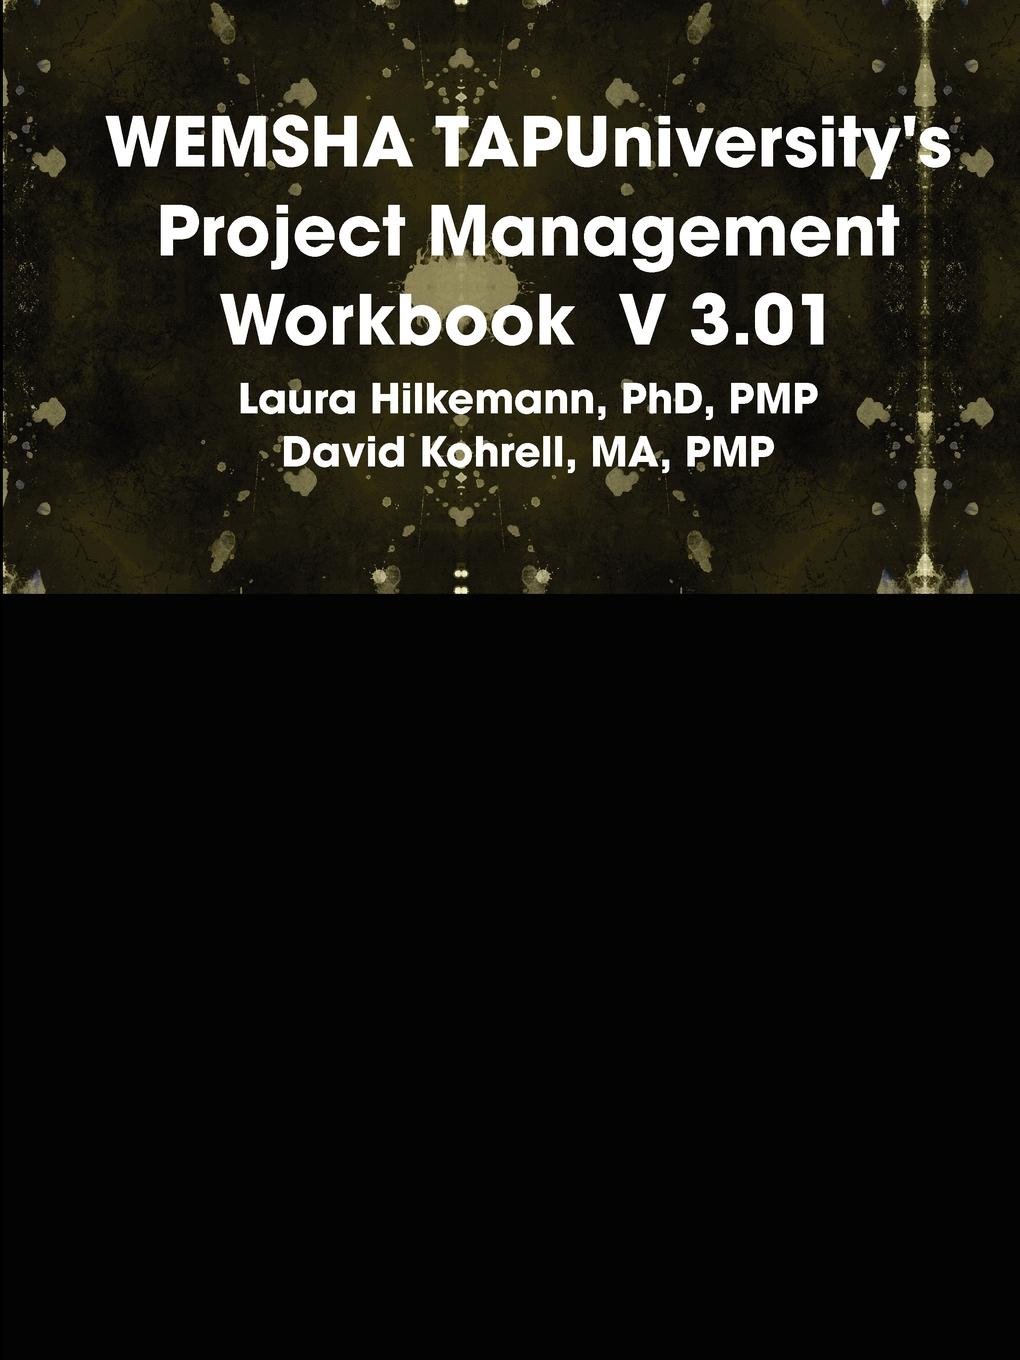 PhD PMP Laura Hilkemann, MA PMP David Kohrell WEMSHA TAPUniversity.s Project Management Workbook V 3.01 o connell fergus what you need to know about project management